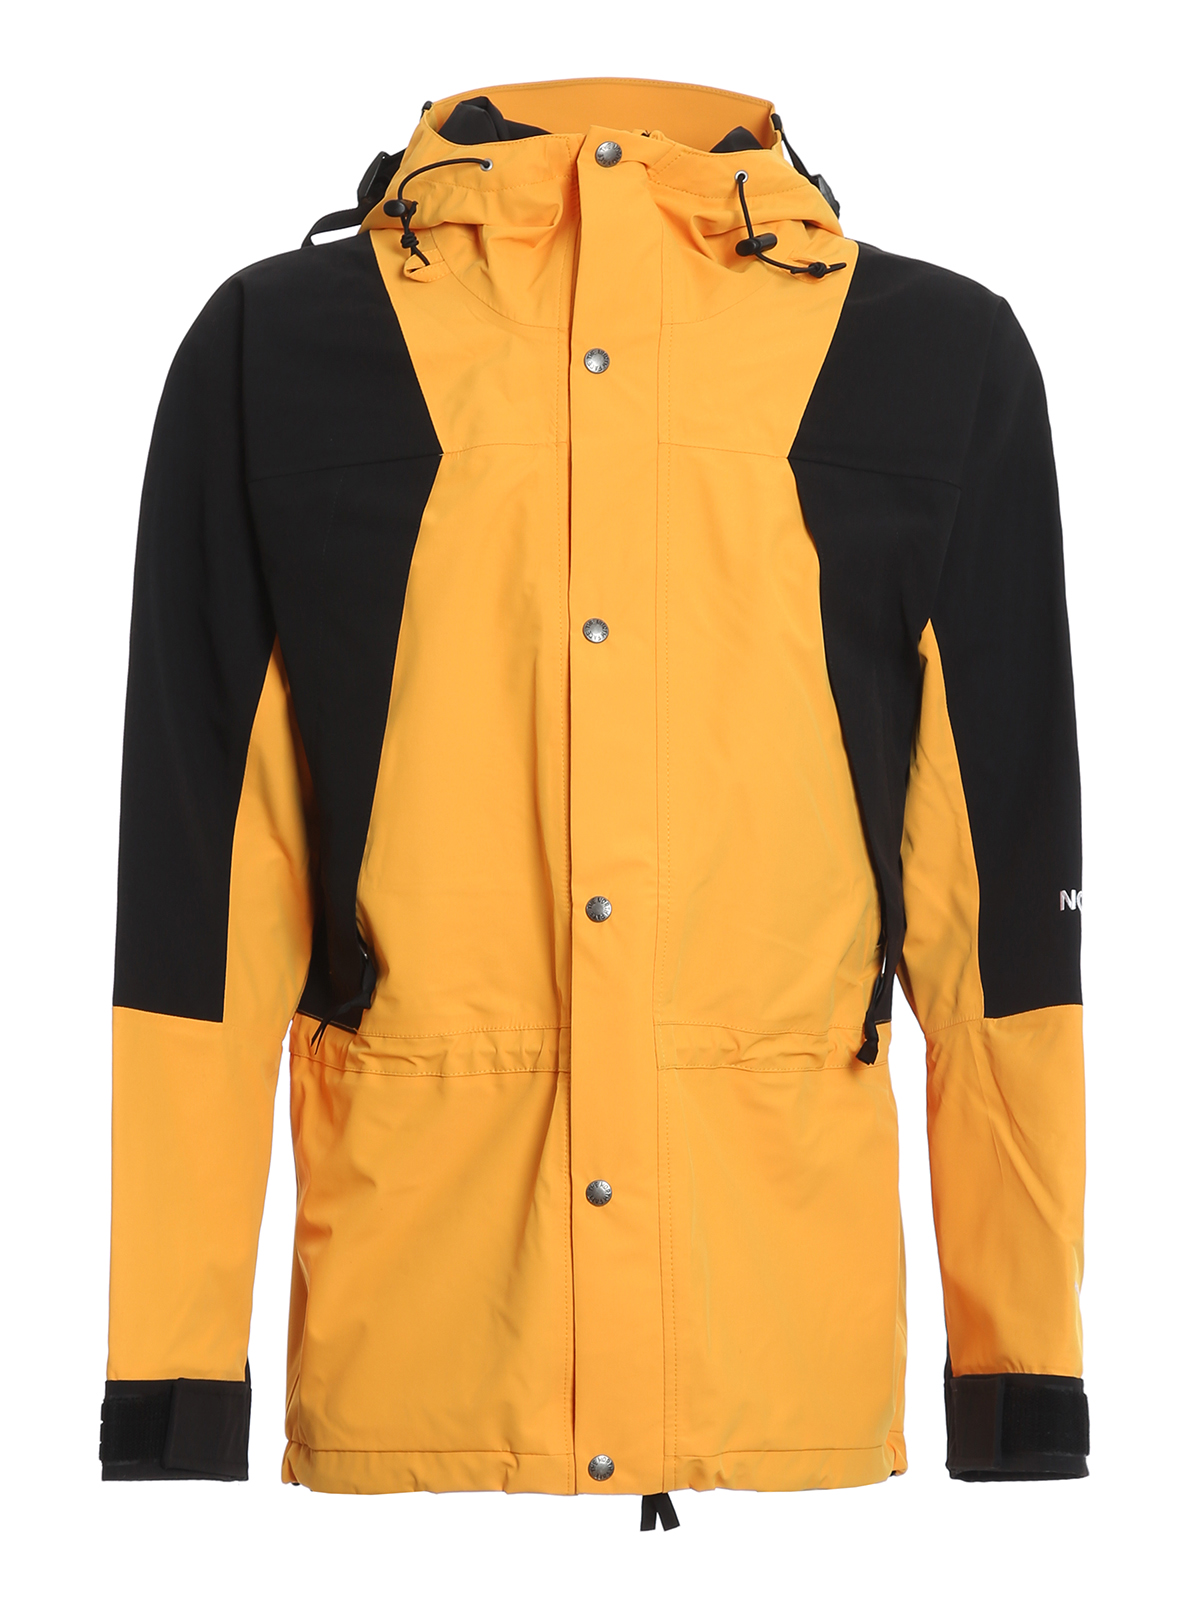 The North Face WINDPROOF 1994 RETRO MOUNTAIN JACKET